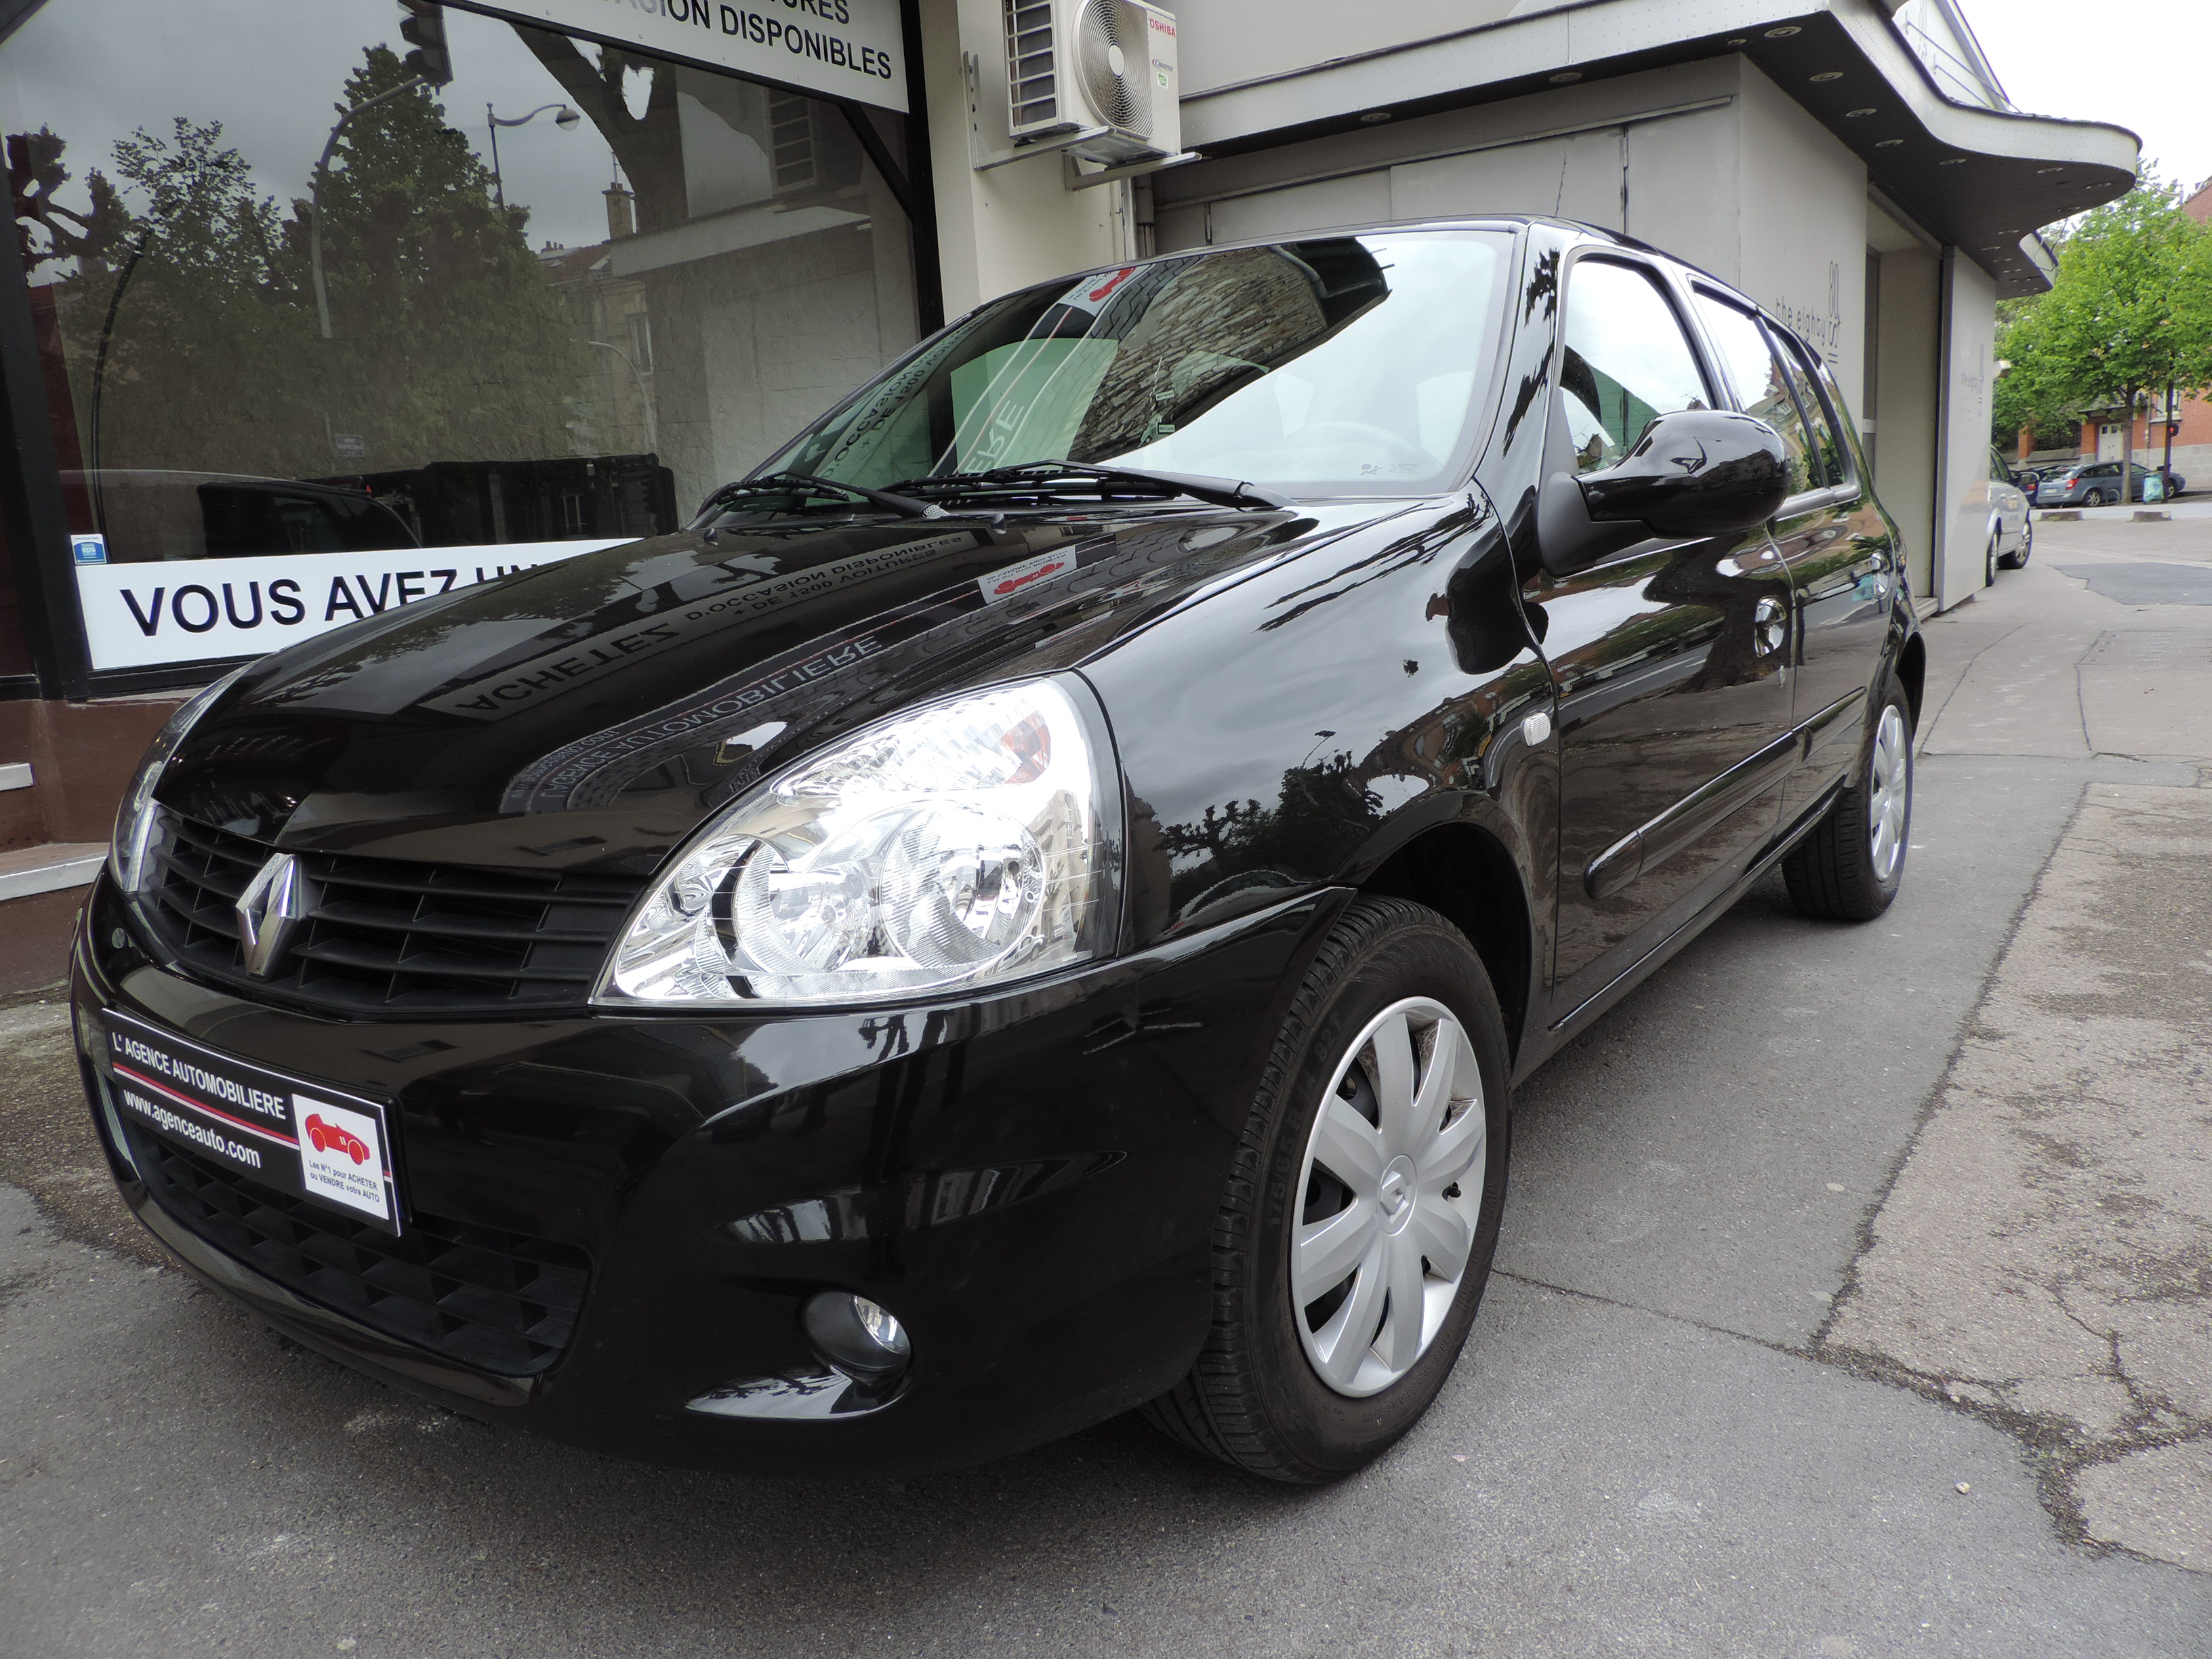 Renault Clio 1 2 16v 75cv Campus Bye Bye Occasion Reims Pas